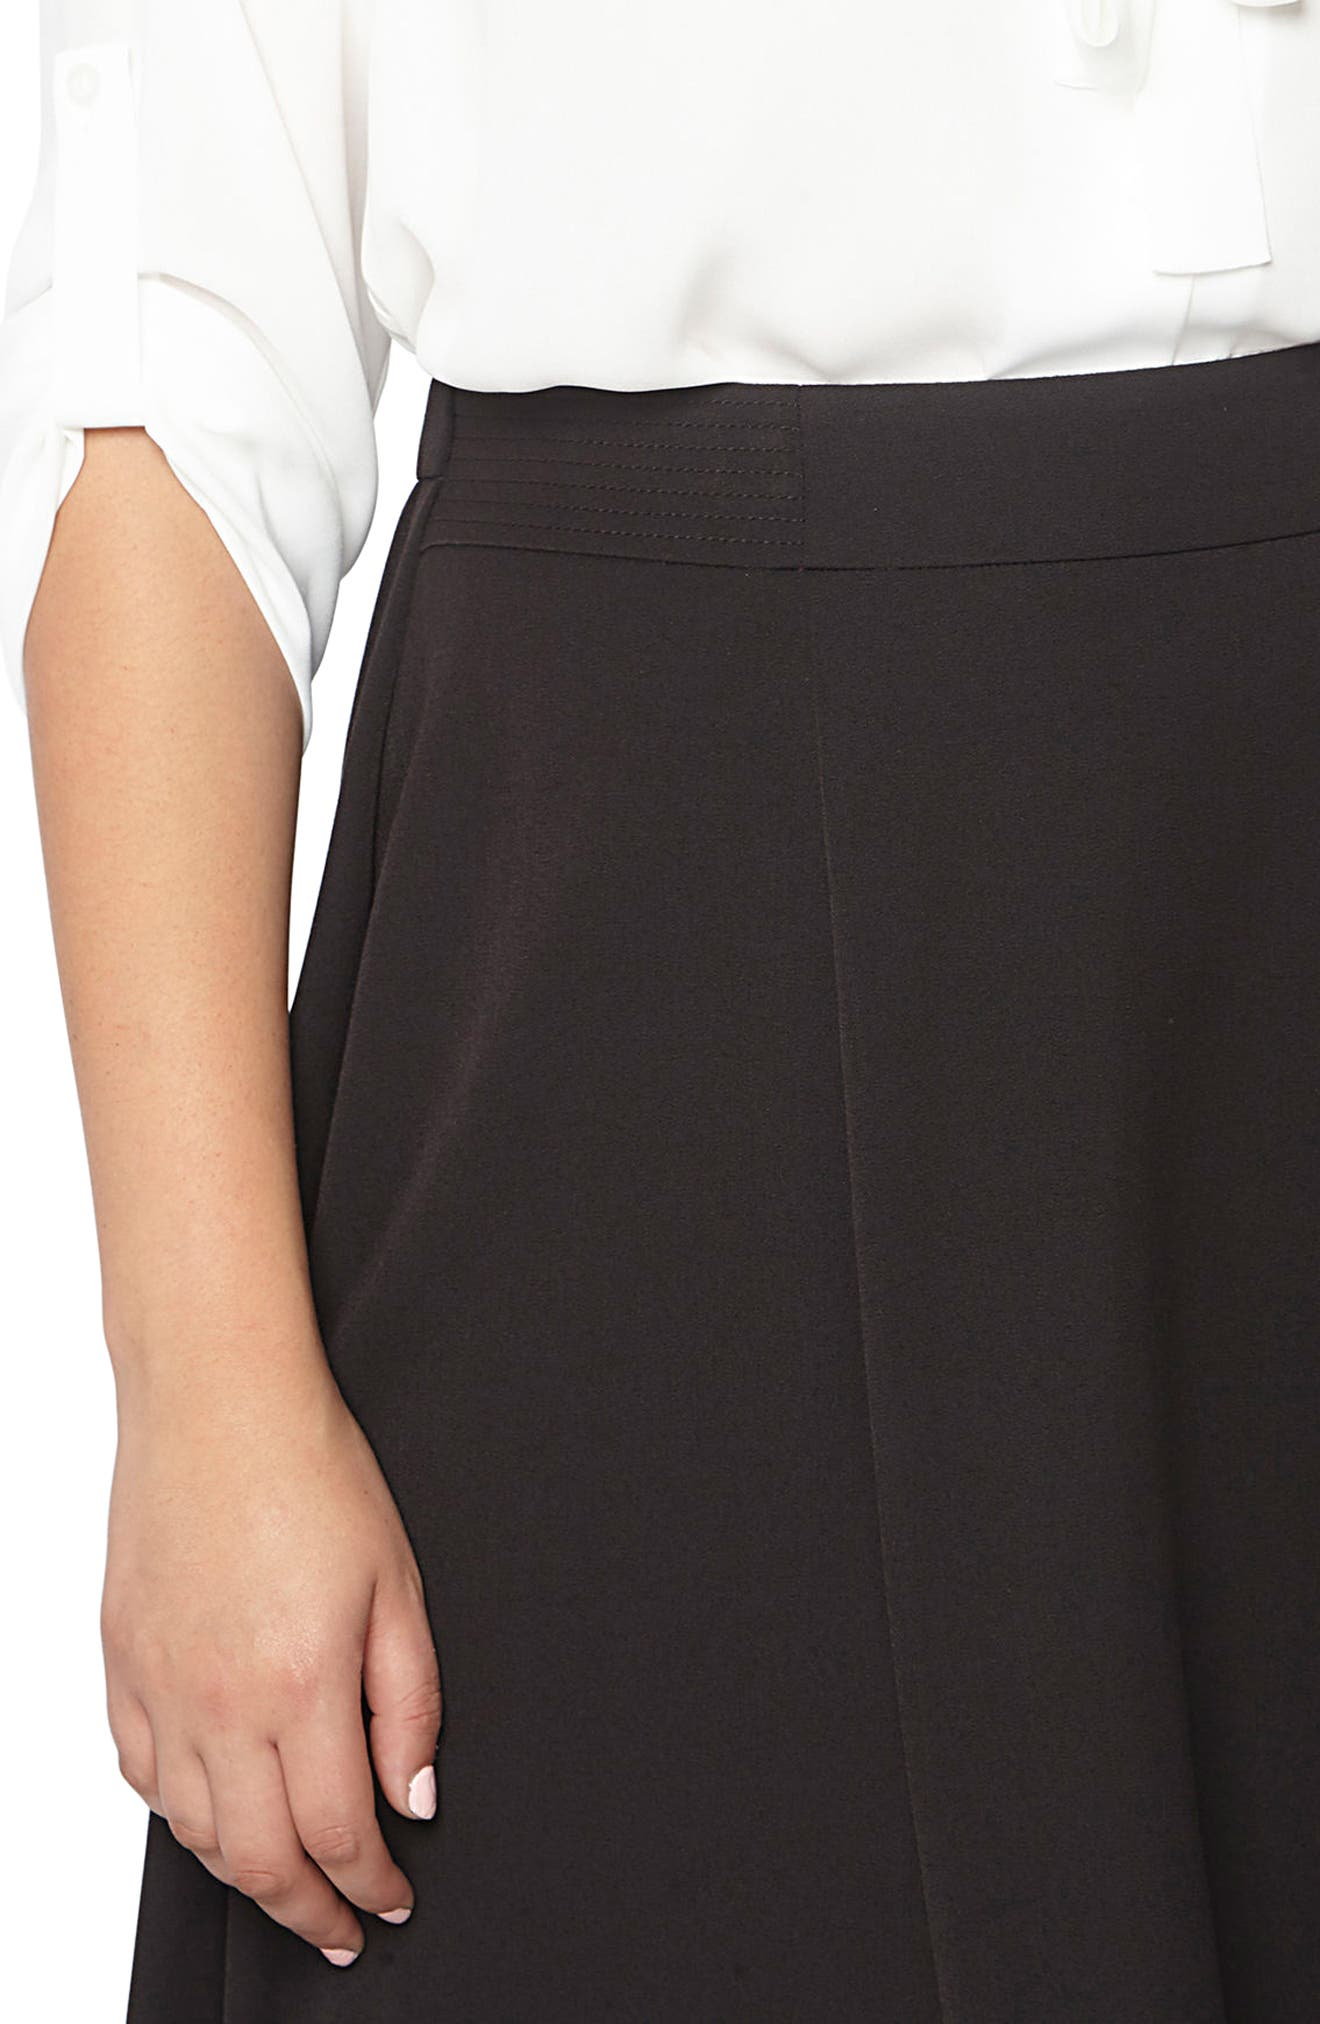 Picasso 36 Skirt,                             Alternate thumbnail 4, color,                             Black